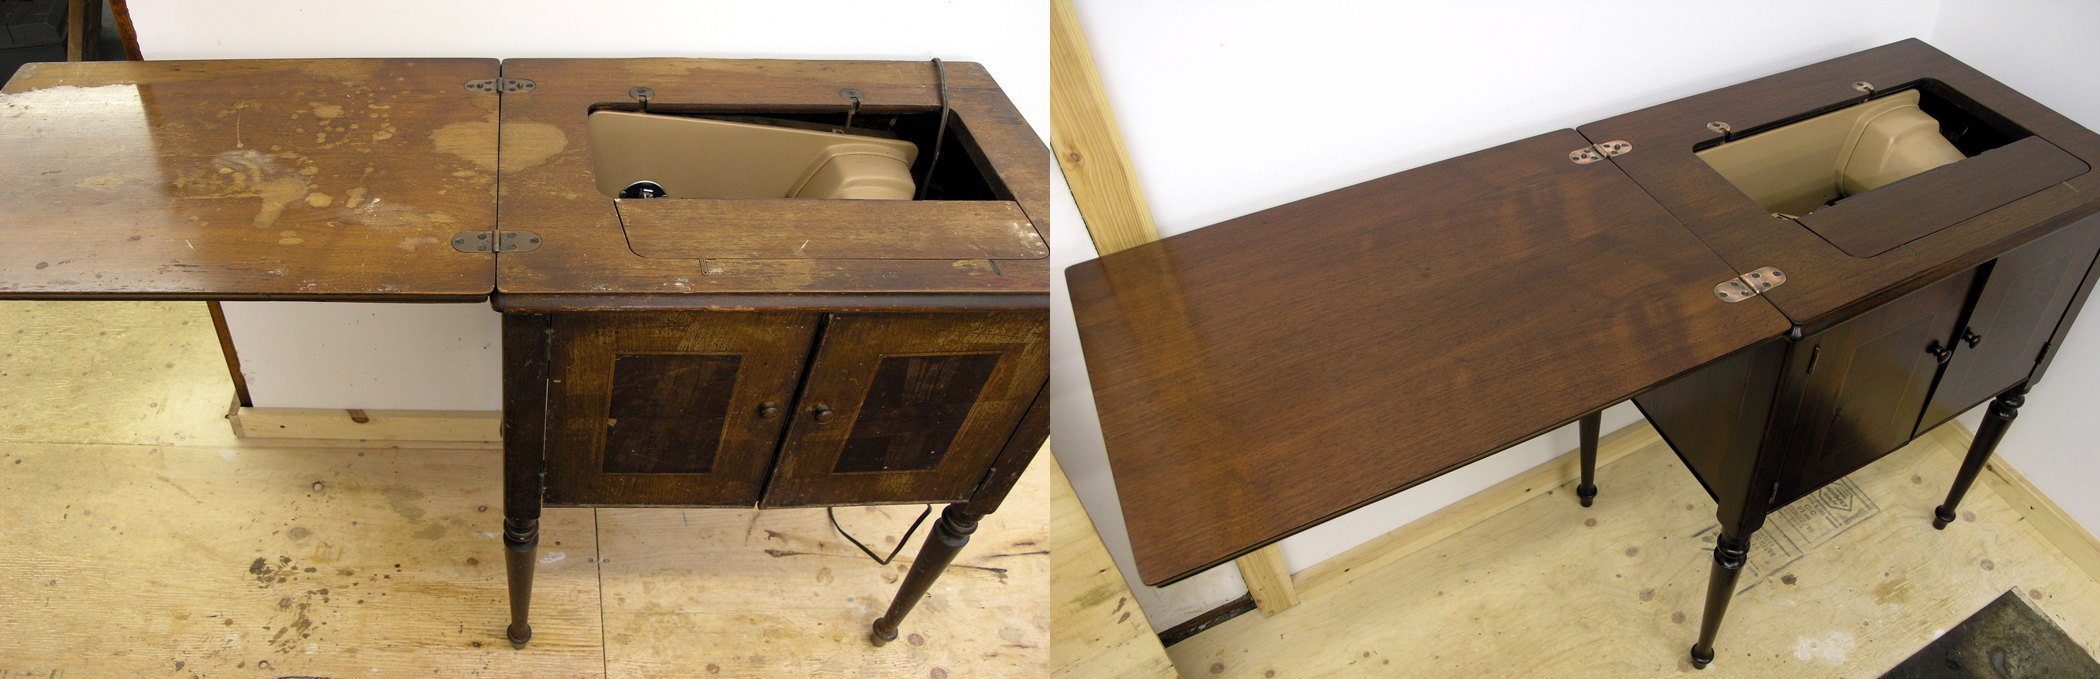 Cabinet before and after refinishing